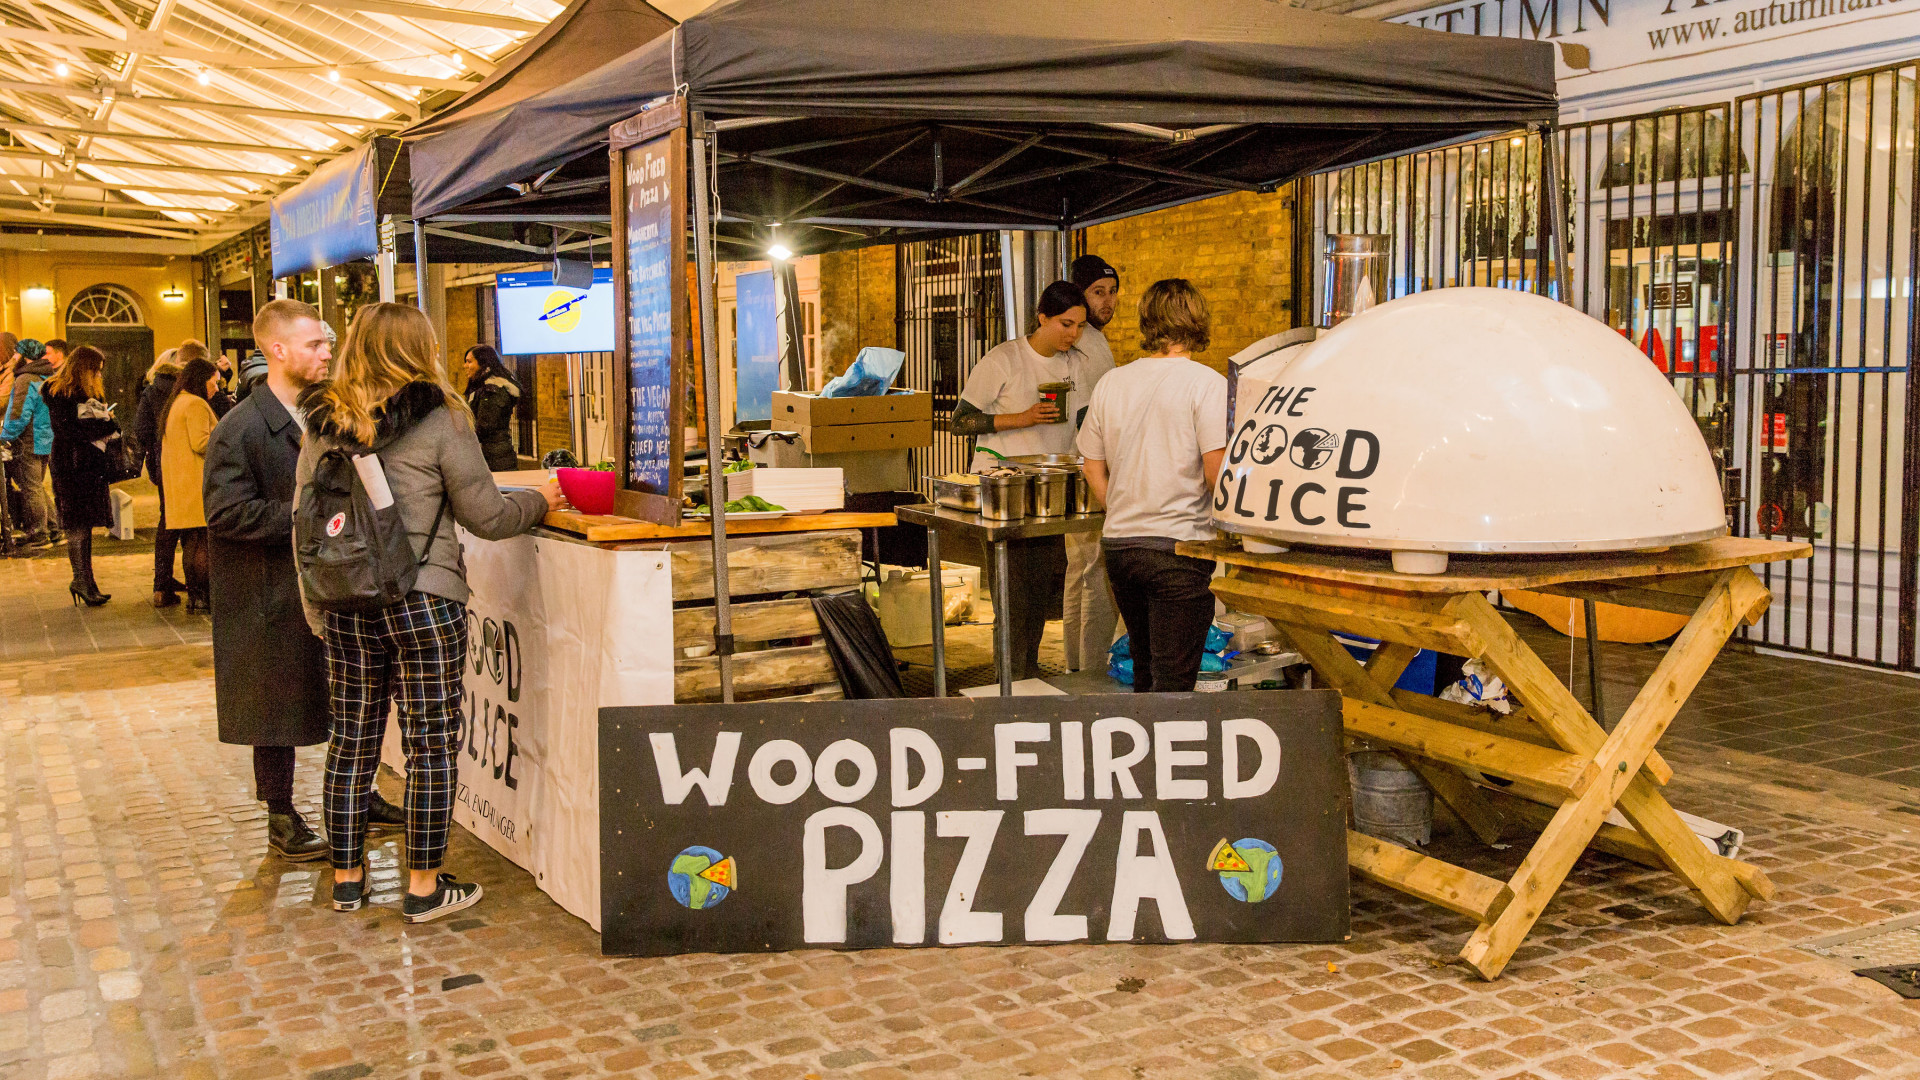 The Foodism 100 awards night 2019: Pizza from The Good Slice